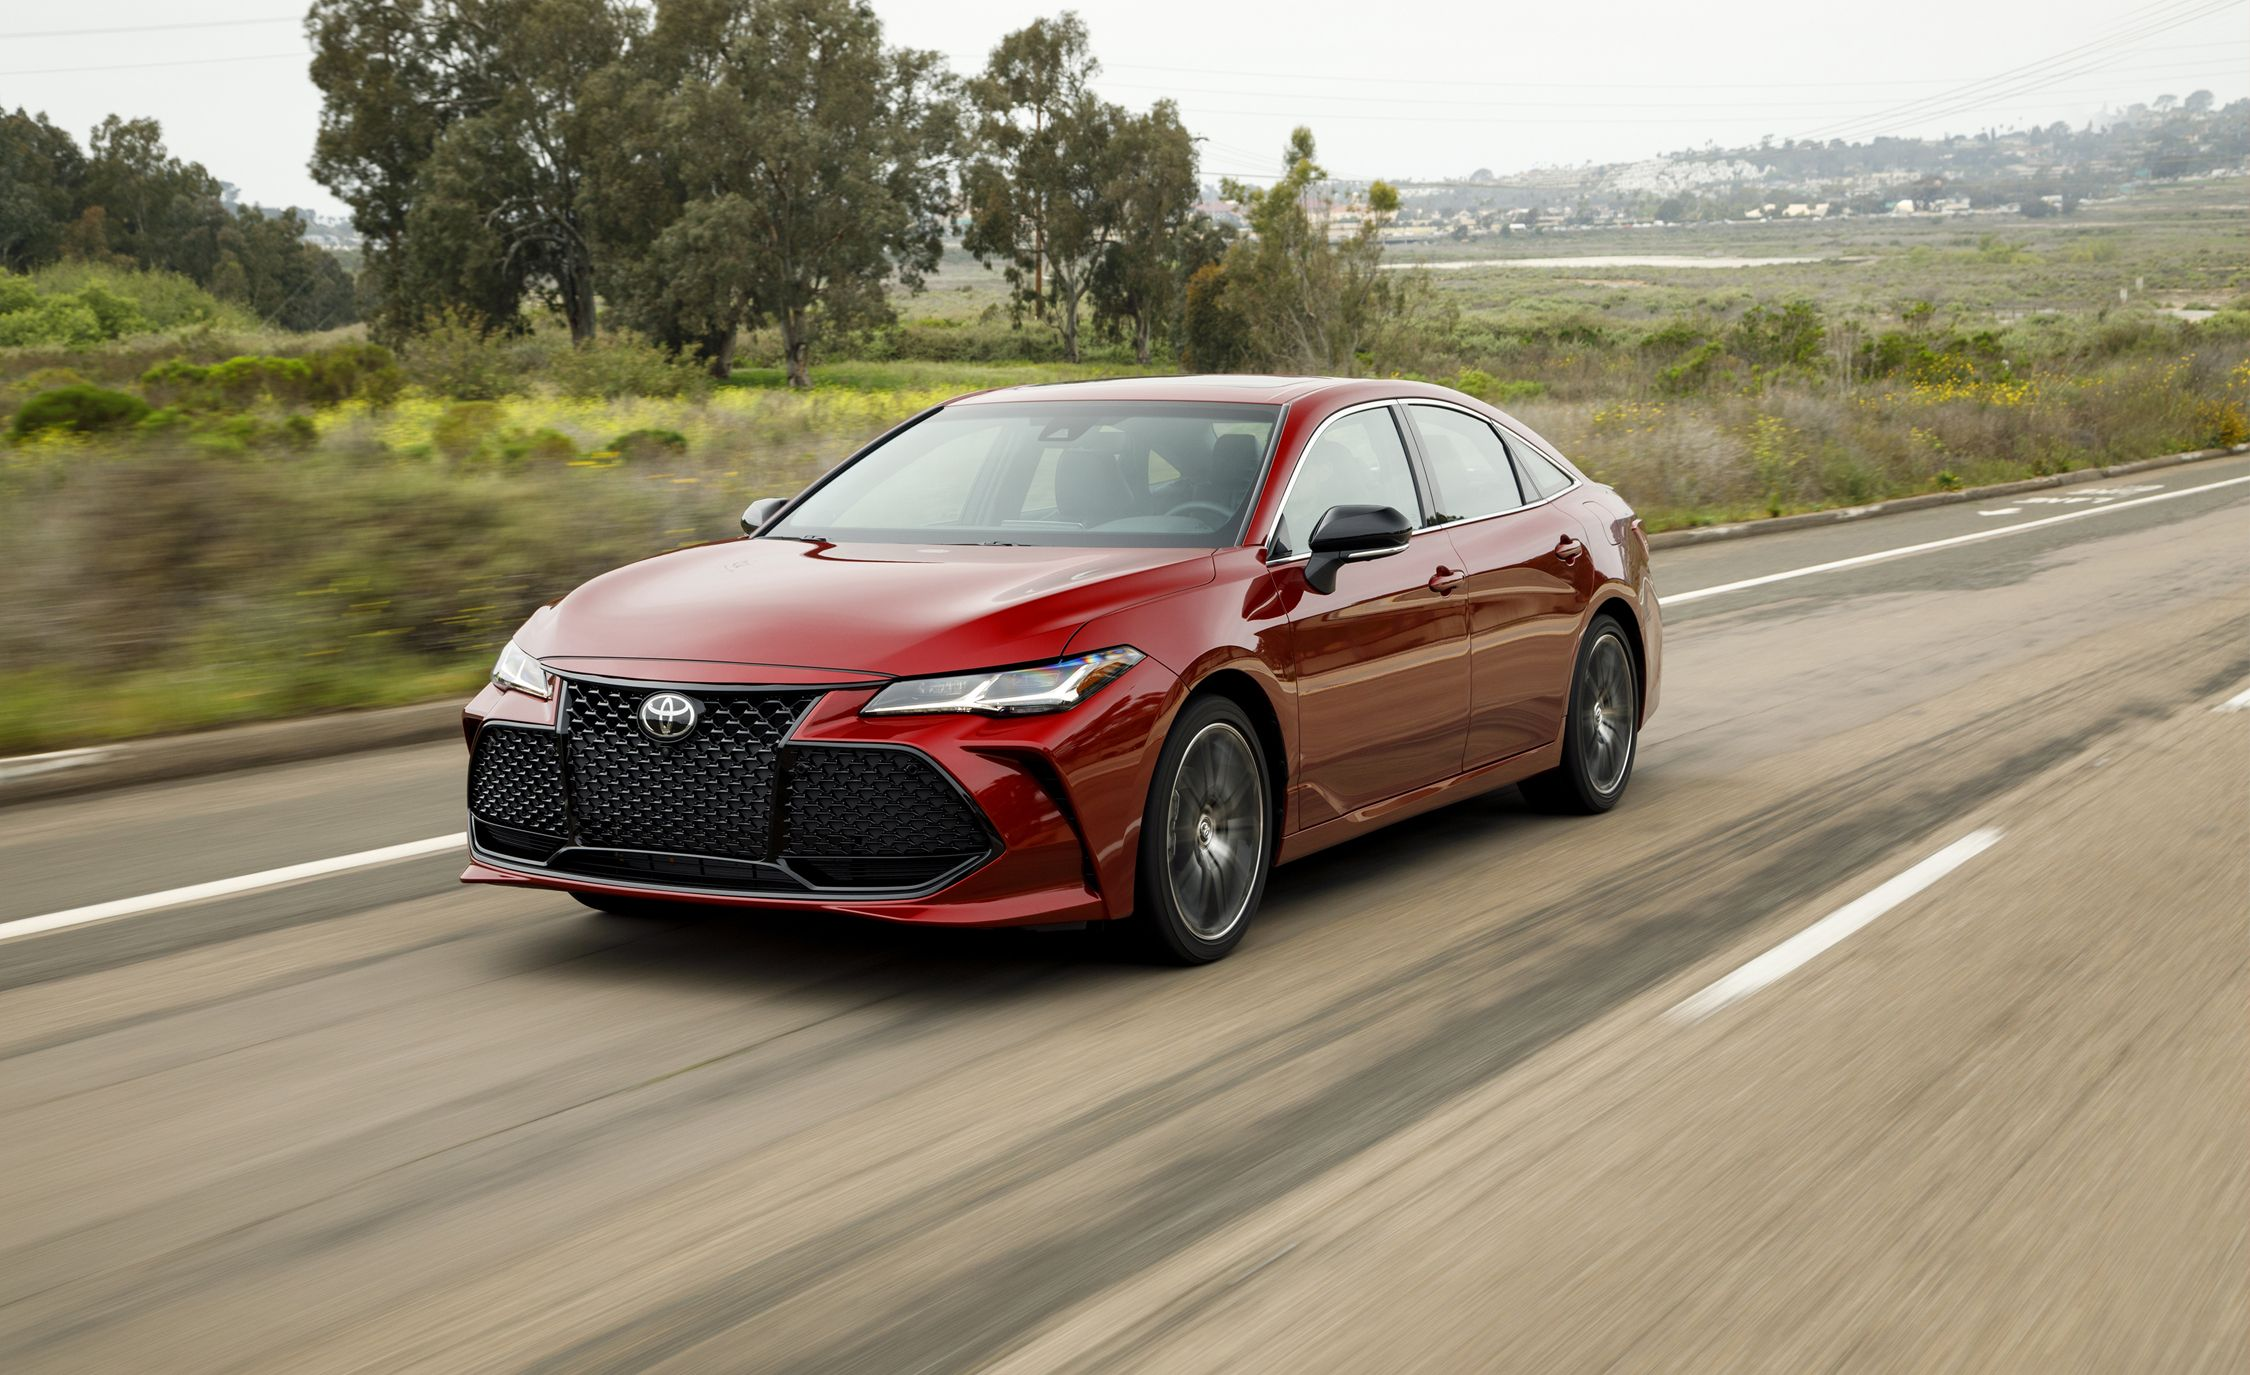 front drive news toyota review a first three hybrid flagship motor avalon split quarter two in limited en